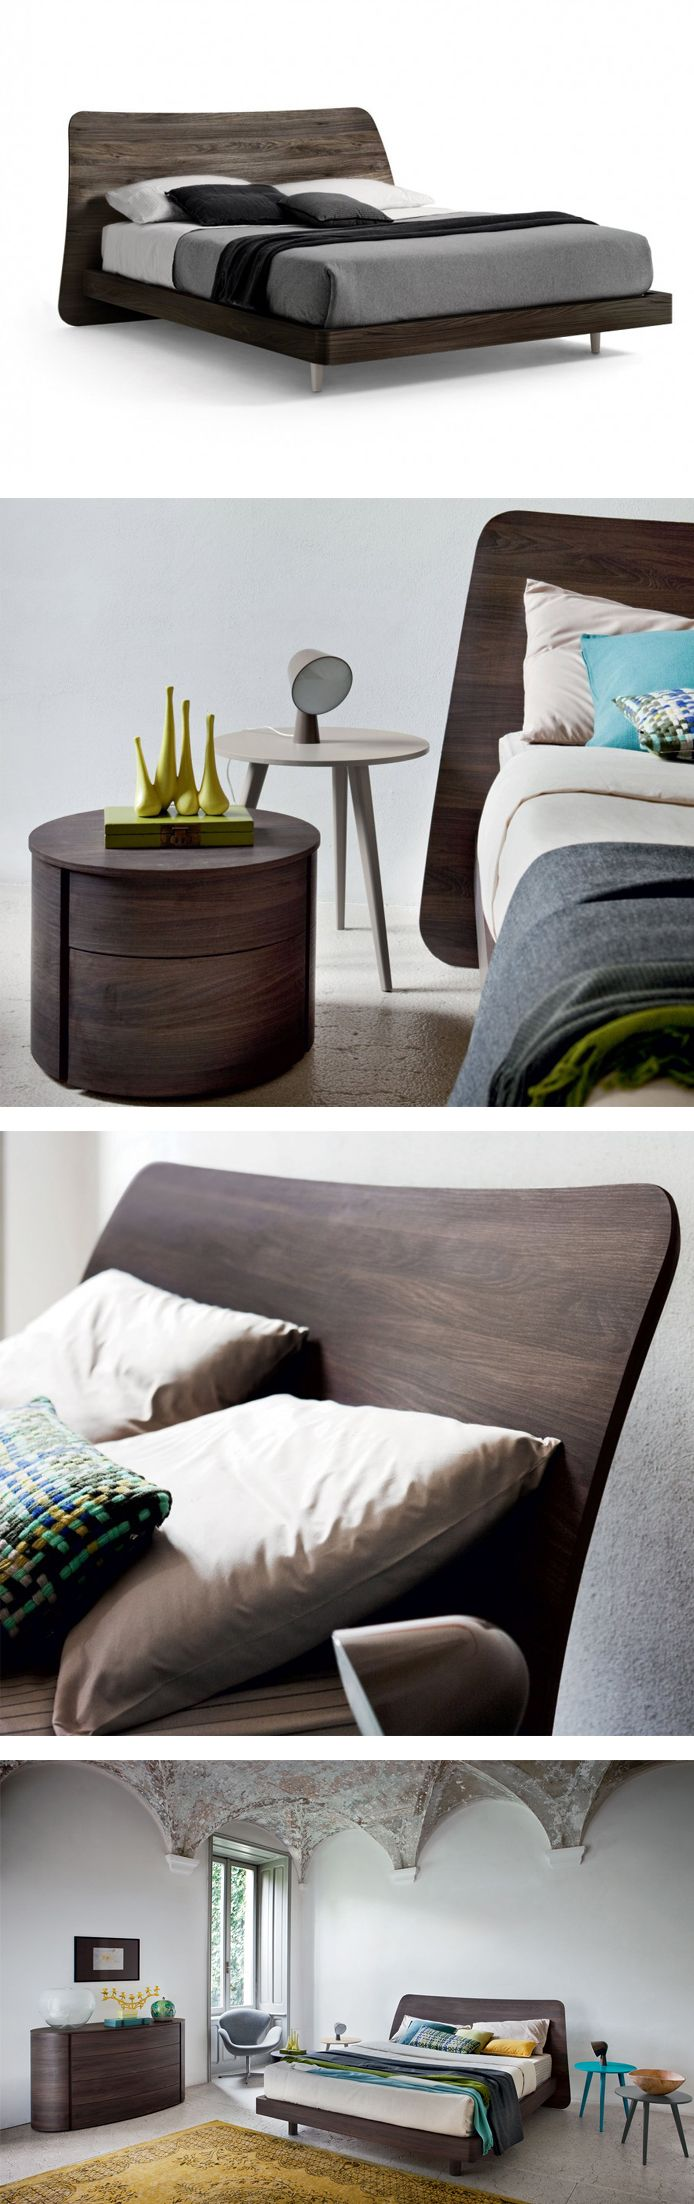 82 best >> Betten << images on Pinterest | Ad home, Arquitetura and ...